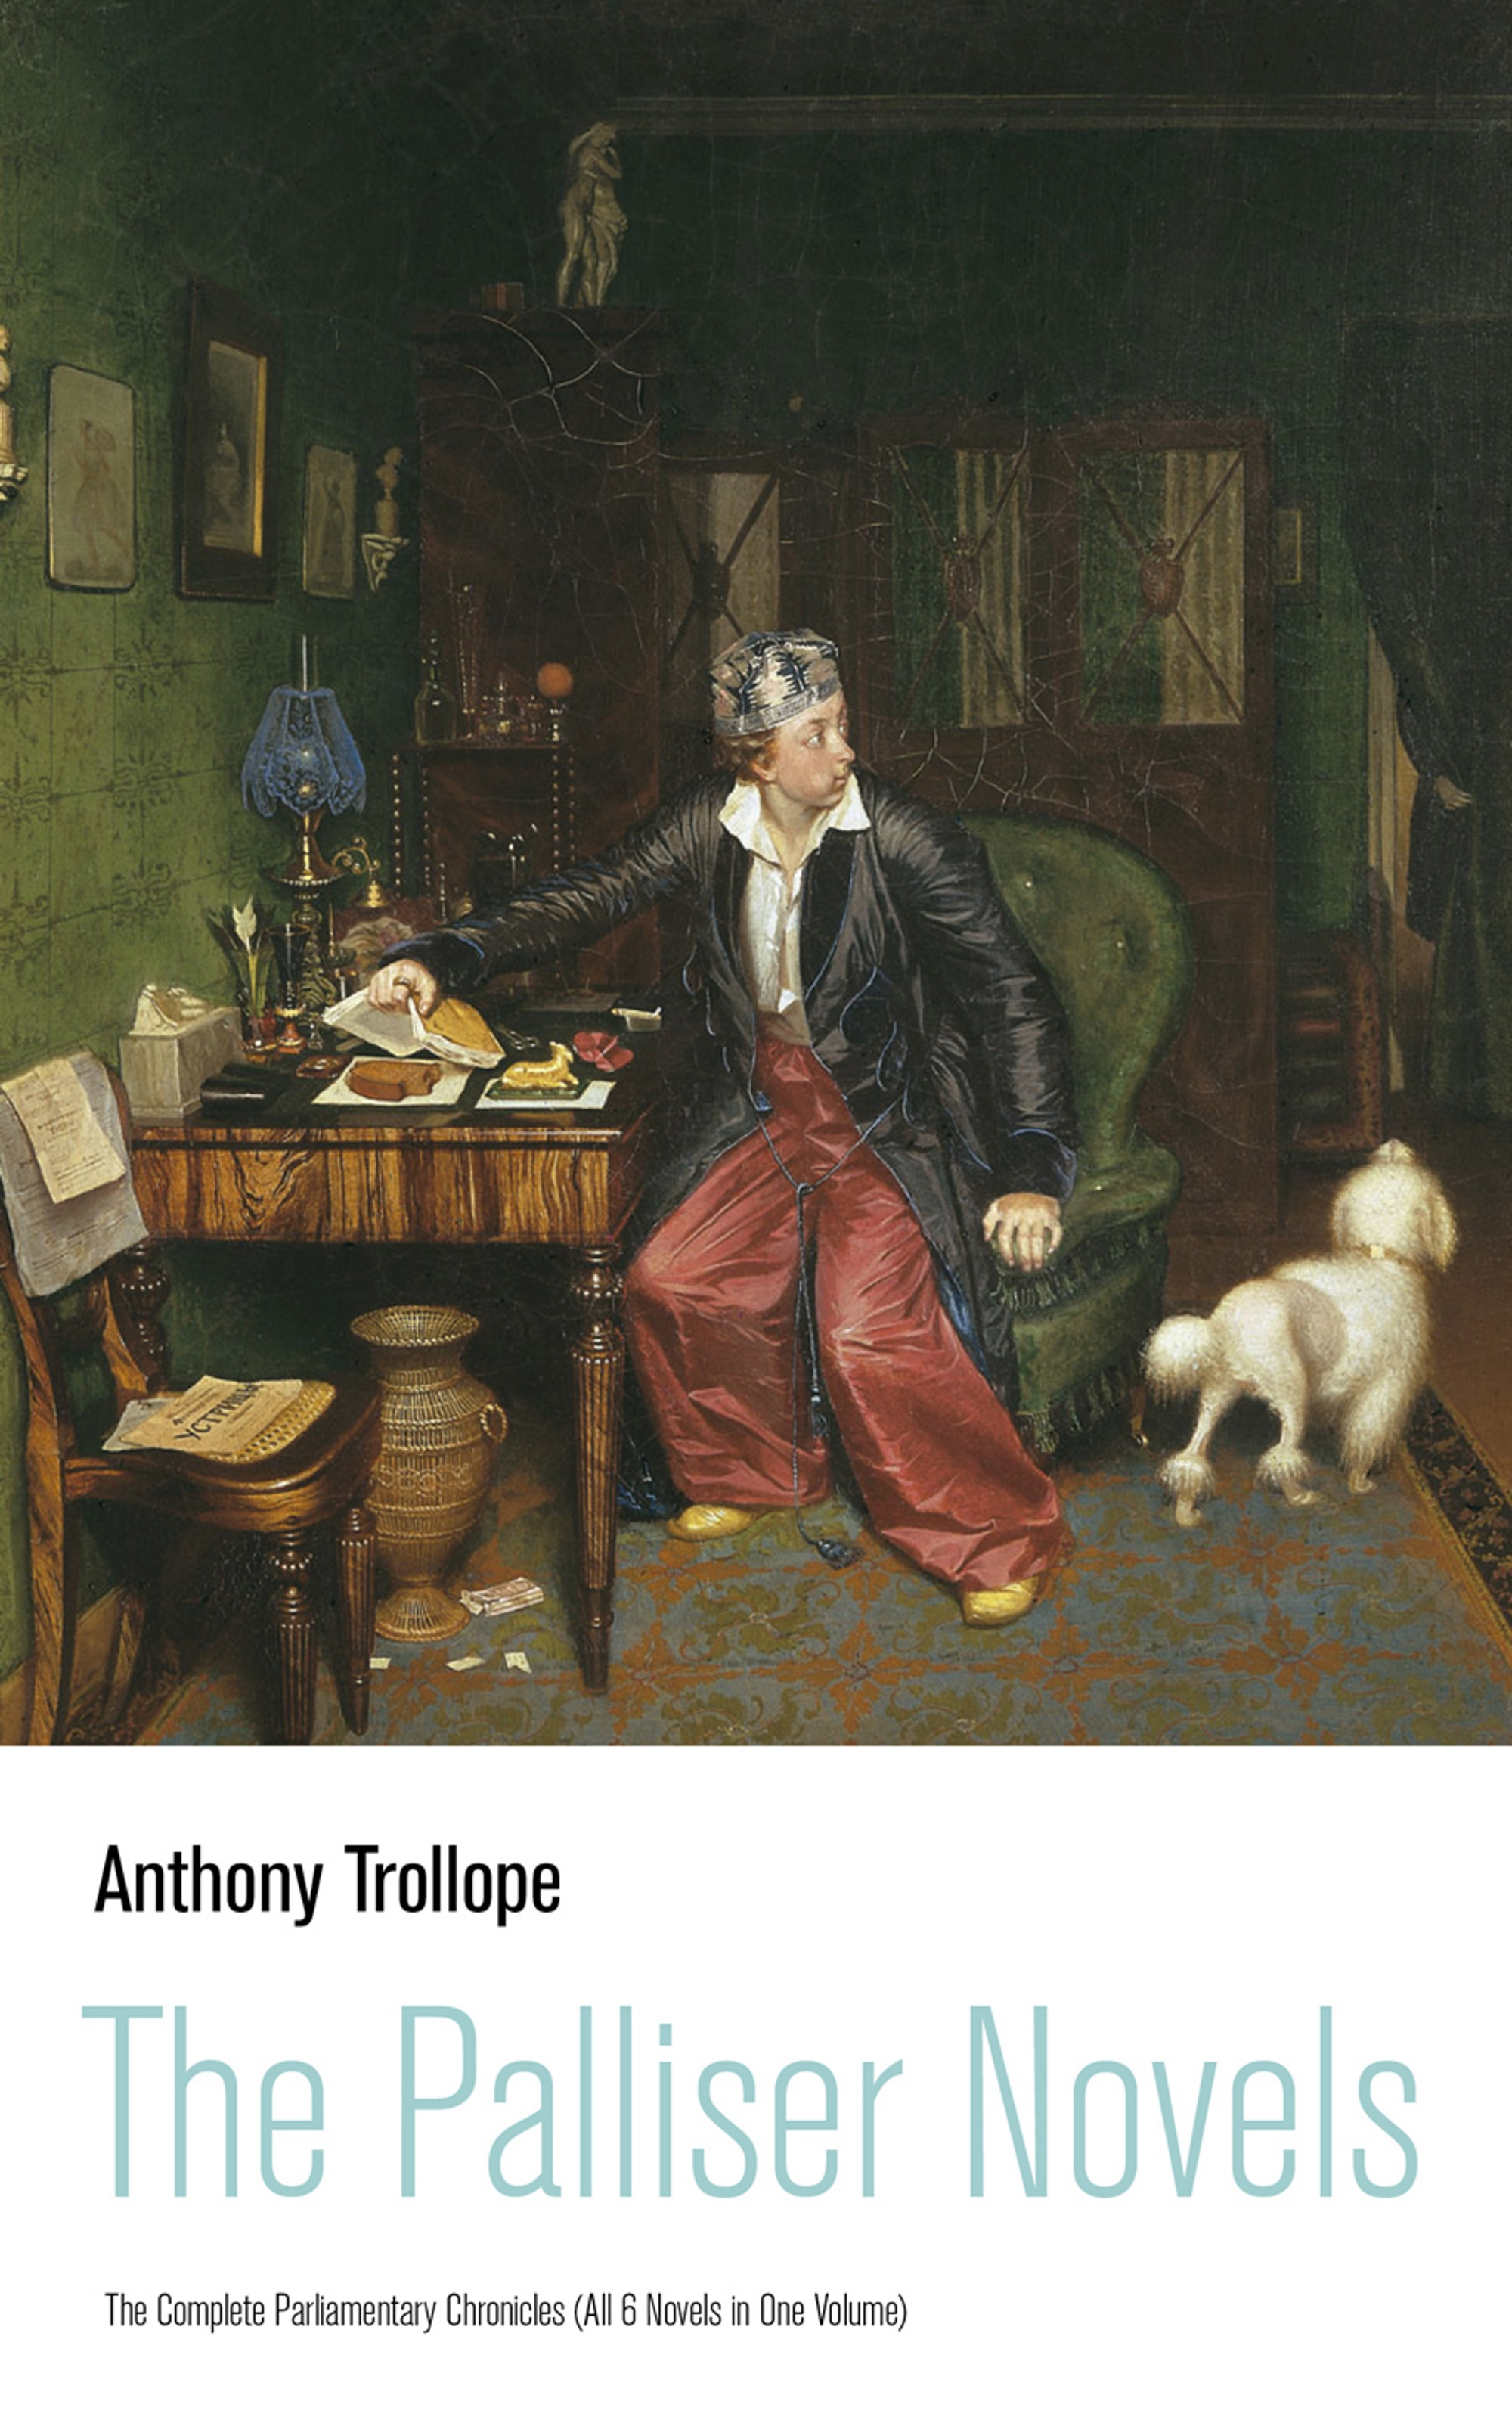 Anthony Trollope The Palliser Novels: The Complete Parliamentary Chronicles (All 6 Novels in One Volume)